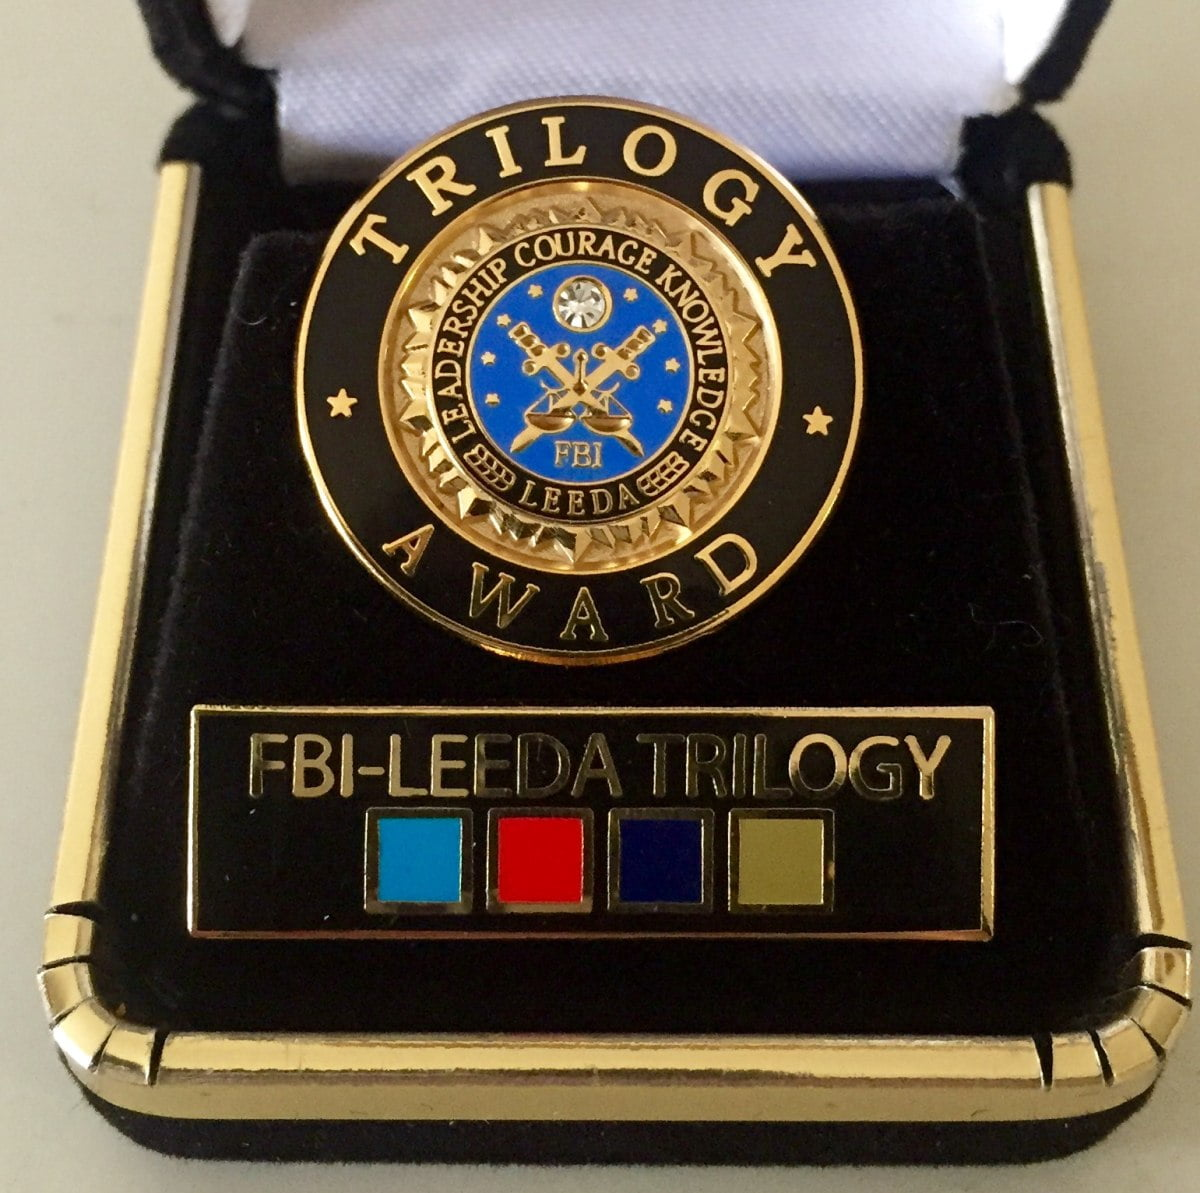 Fisd chief of police earns fbi trilogy awards my wolfforth news fisd chief of police earns fbi trilogy awards 1betcityfo Images